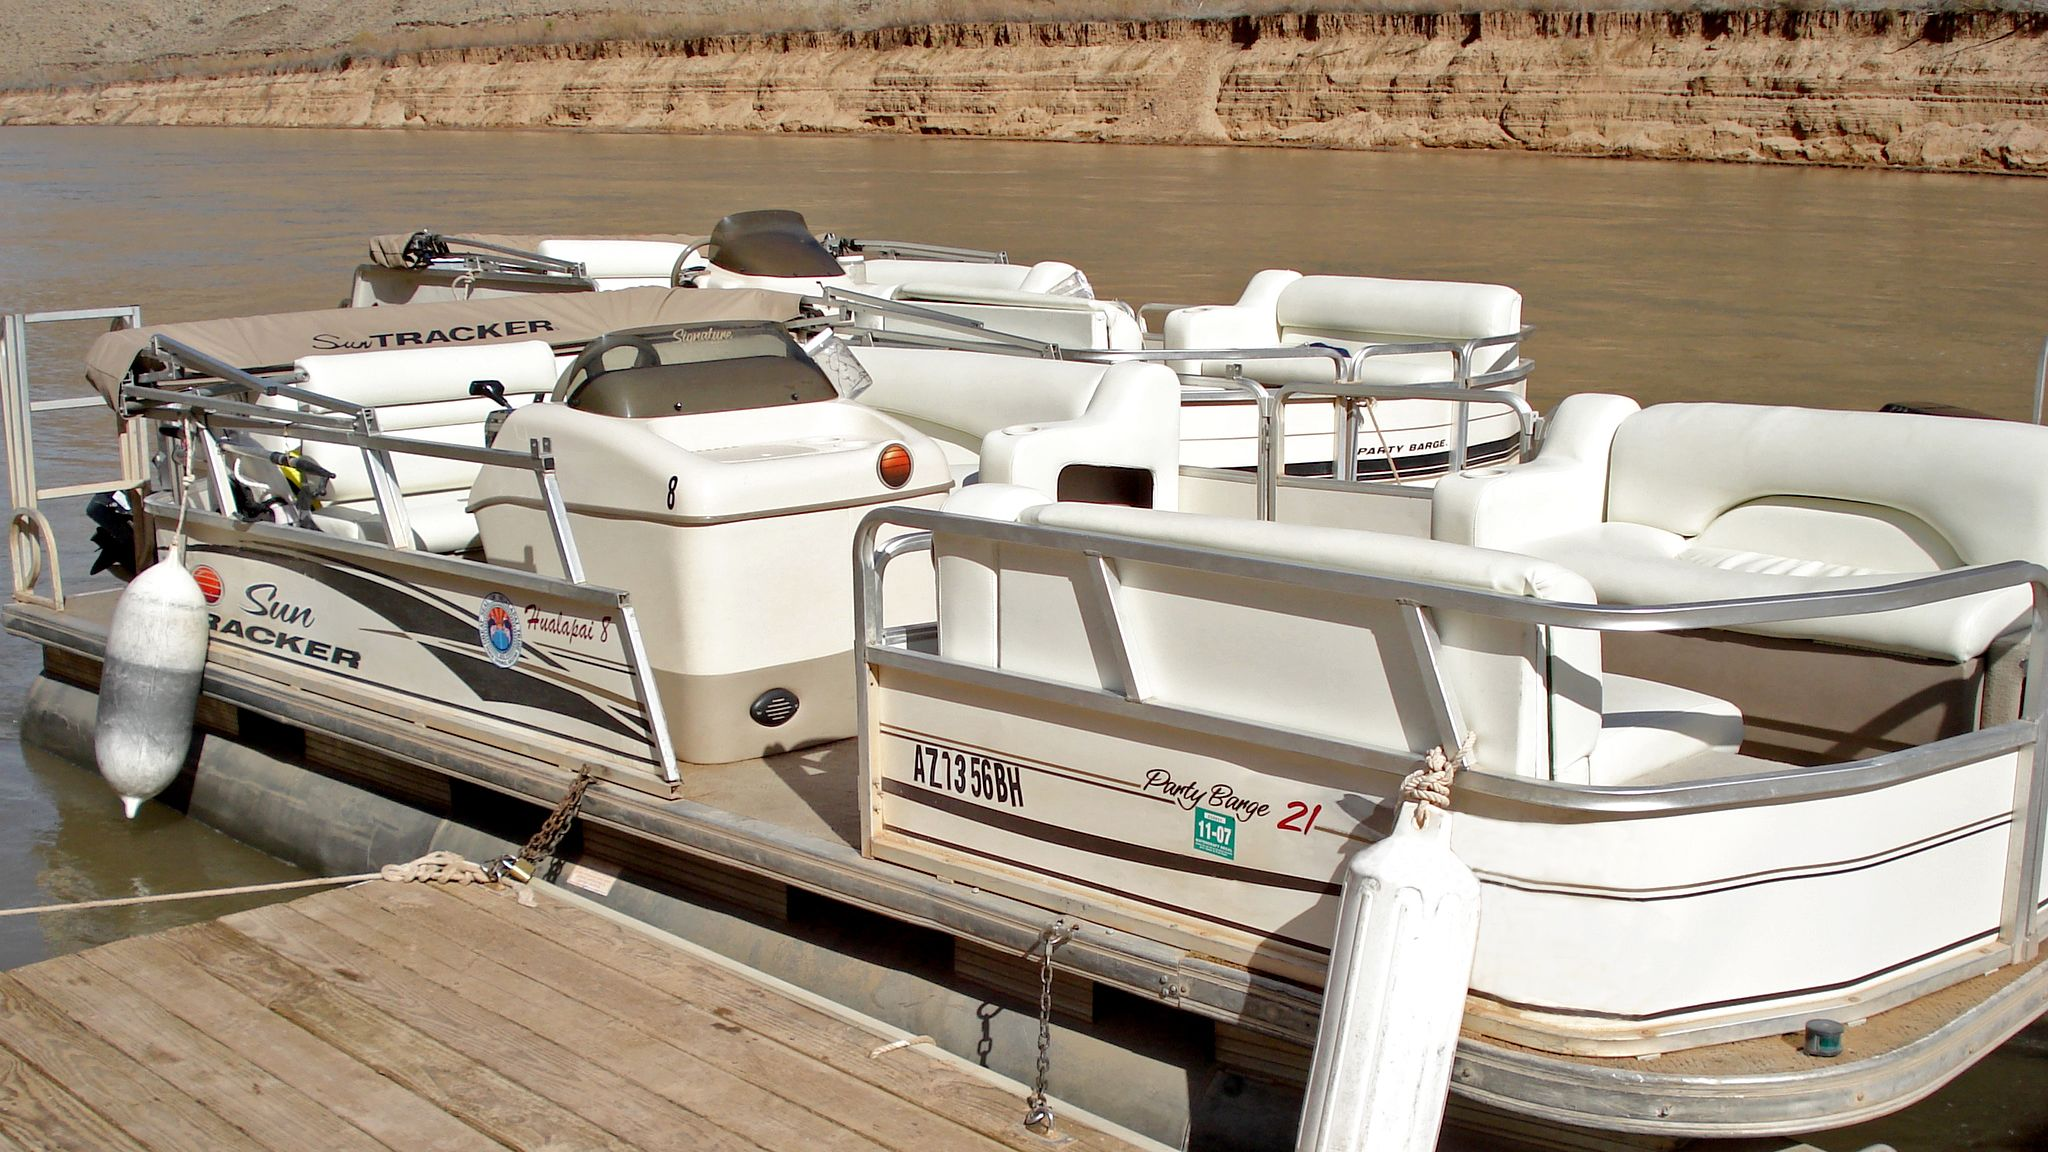 View of Pontoon boat on Colorado River